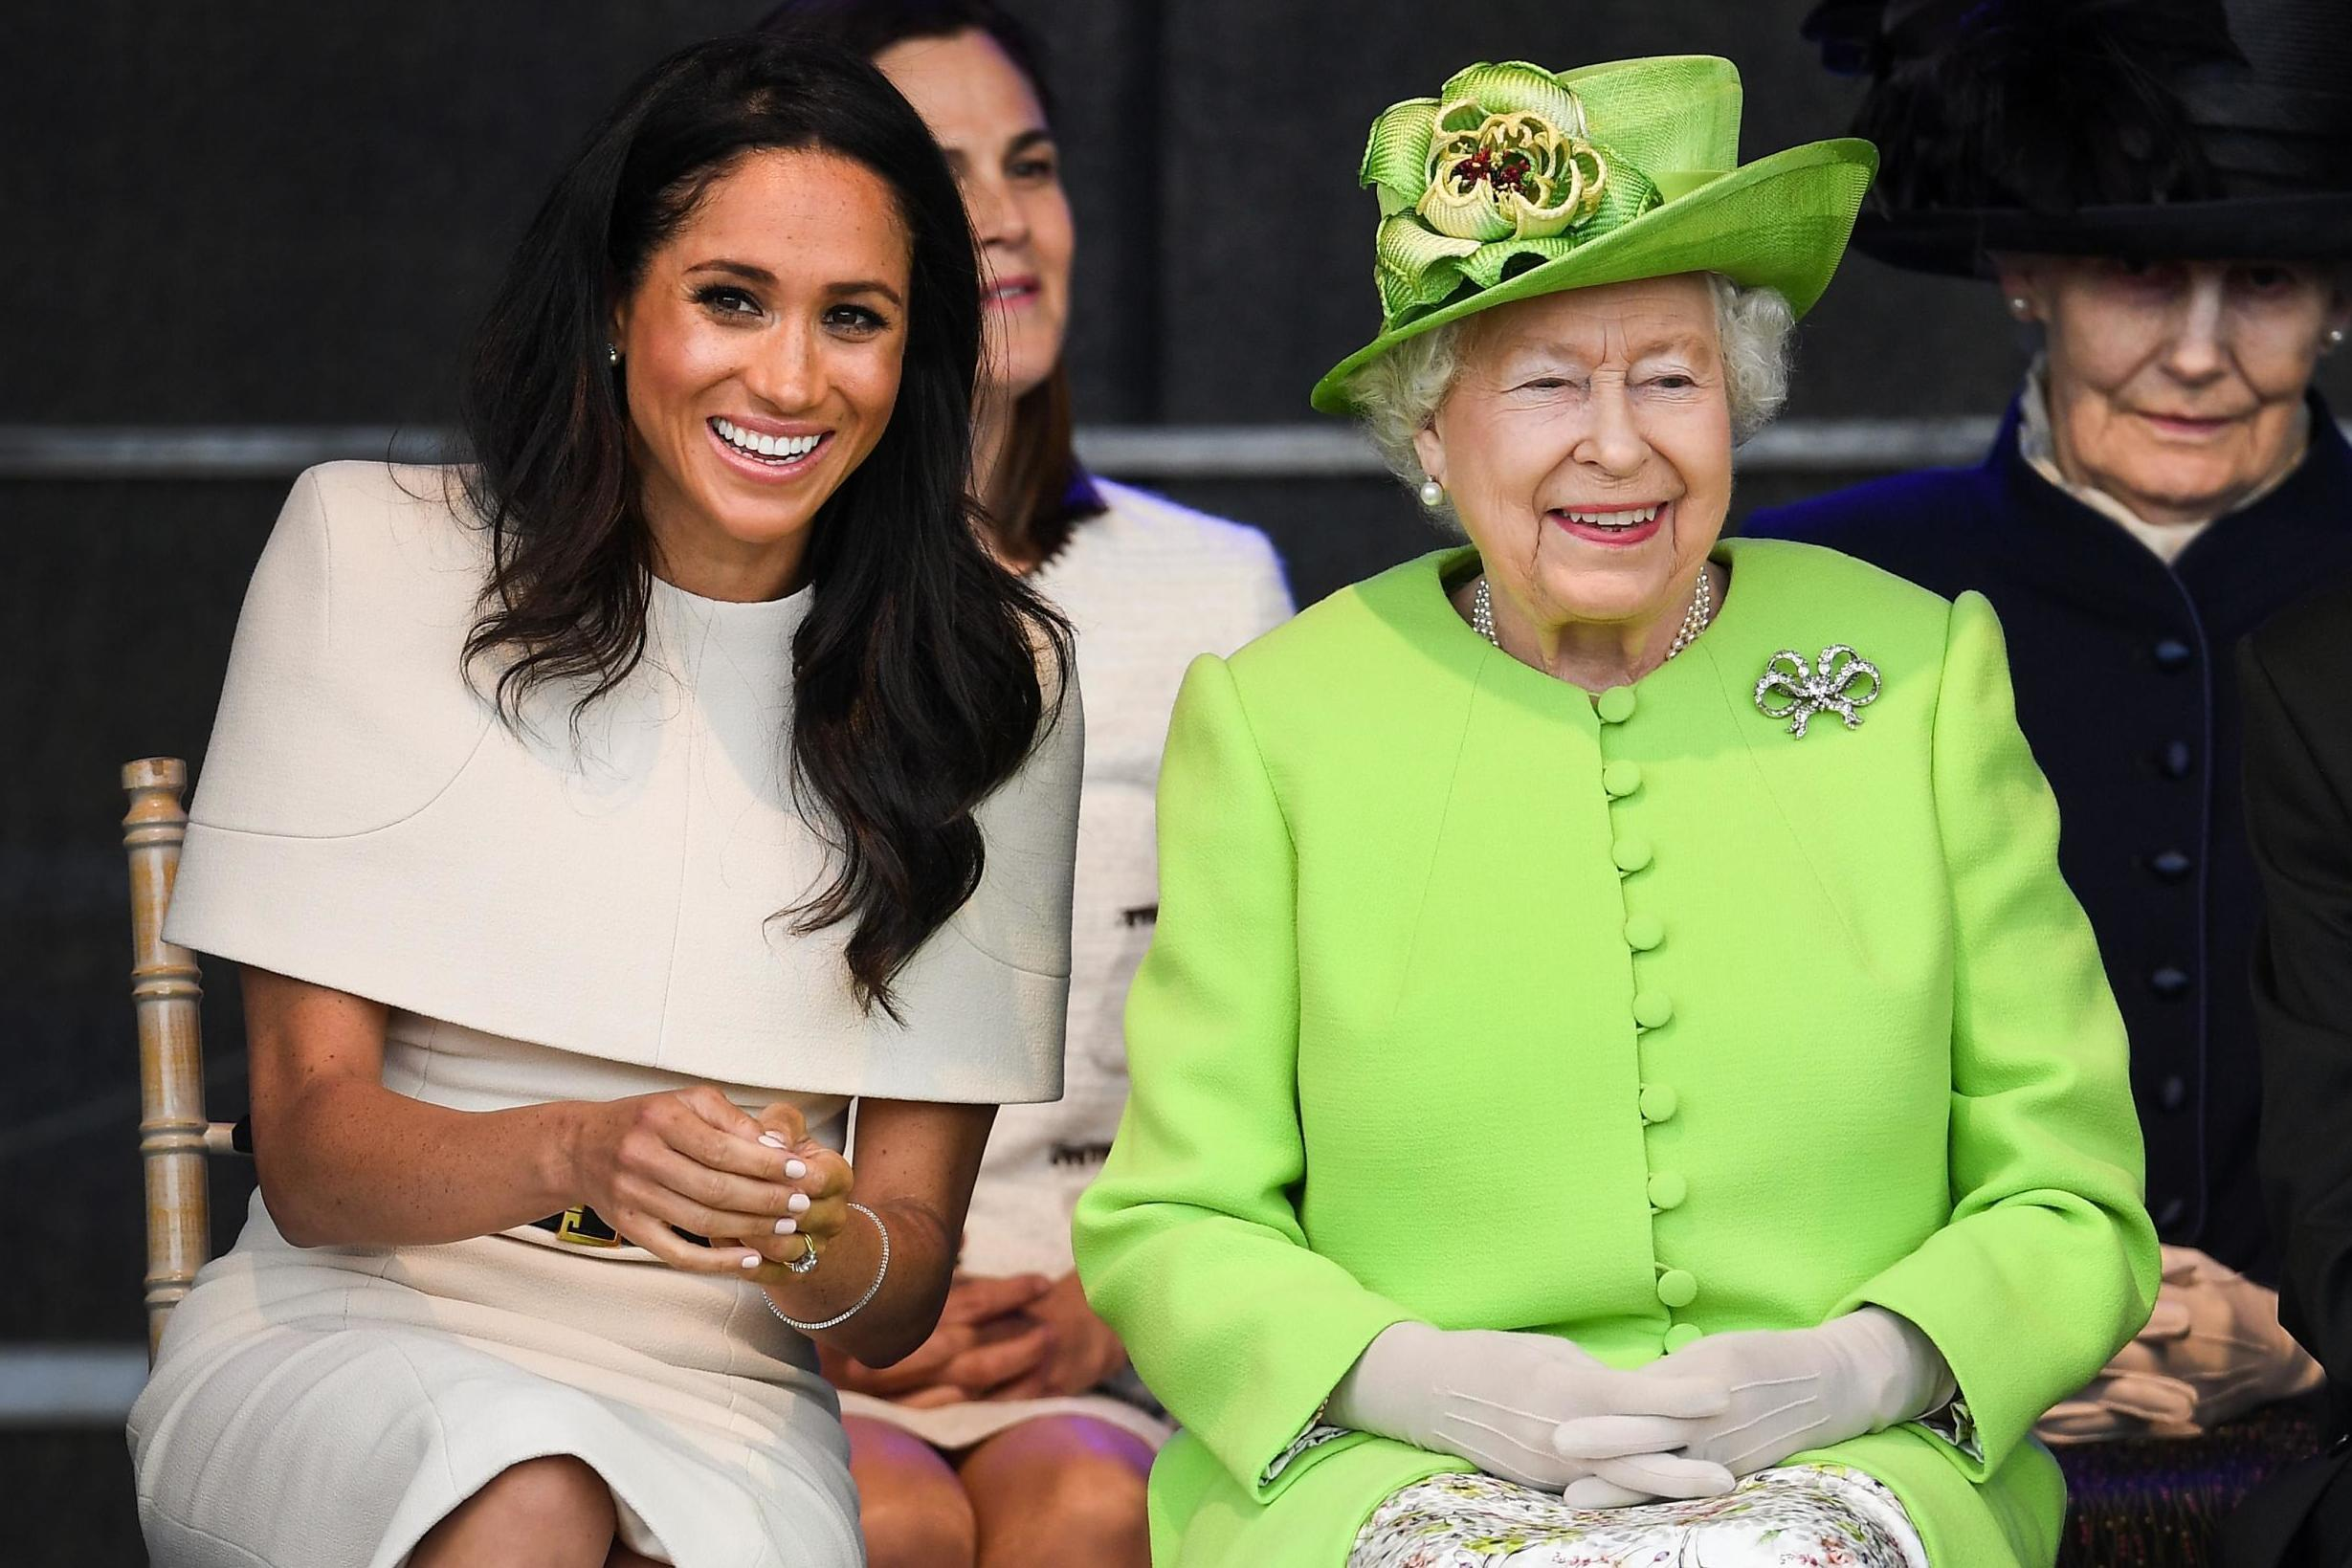 Why the Queen will get to see Meghan Markle's wedding dress before anyone else Why the Queen will get to see Meghan Markle's wedding dress before anyone else new photo